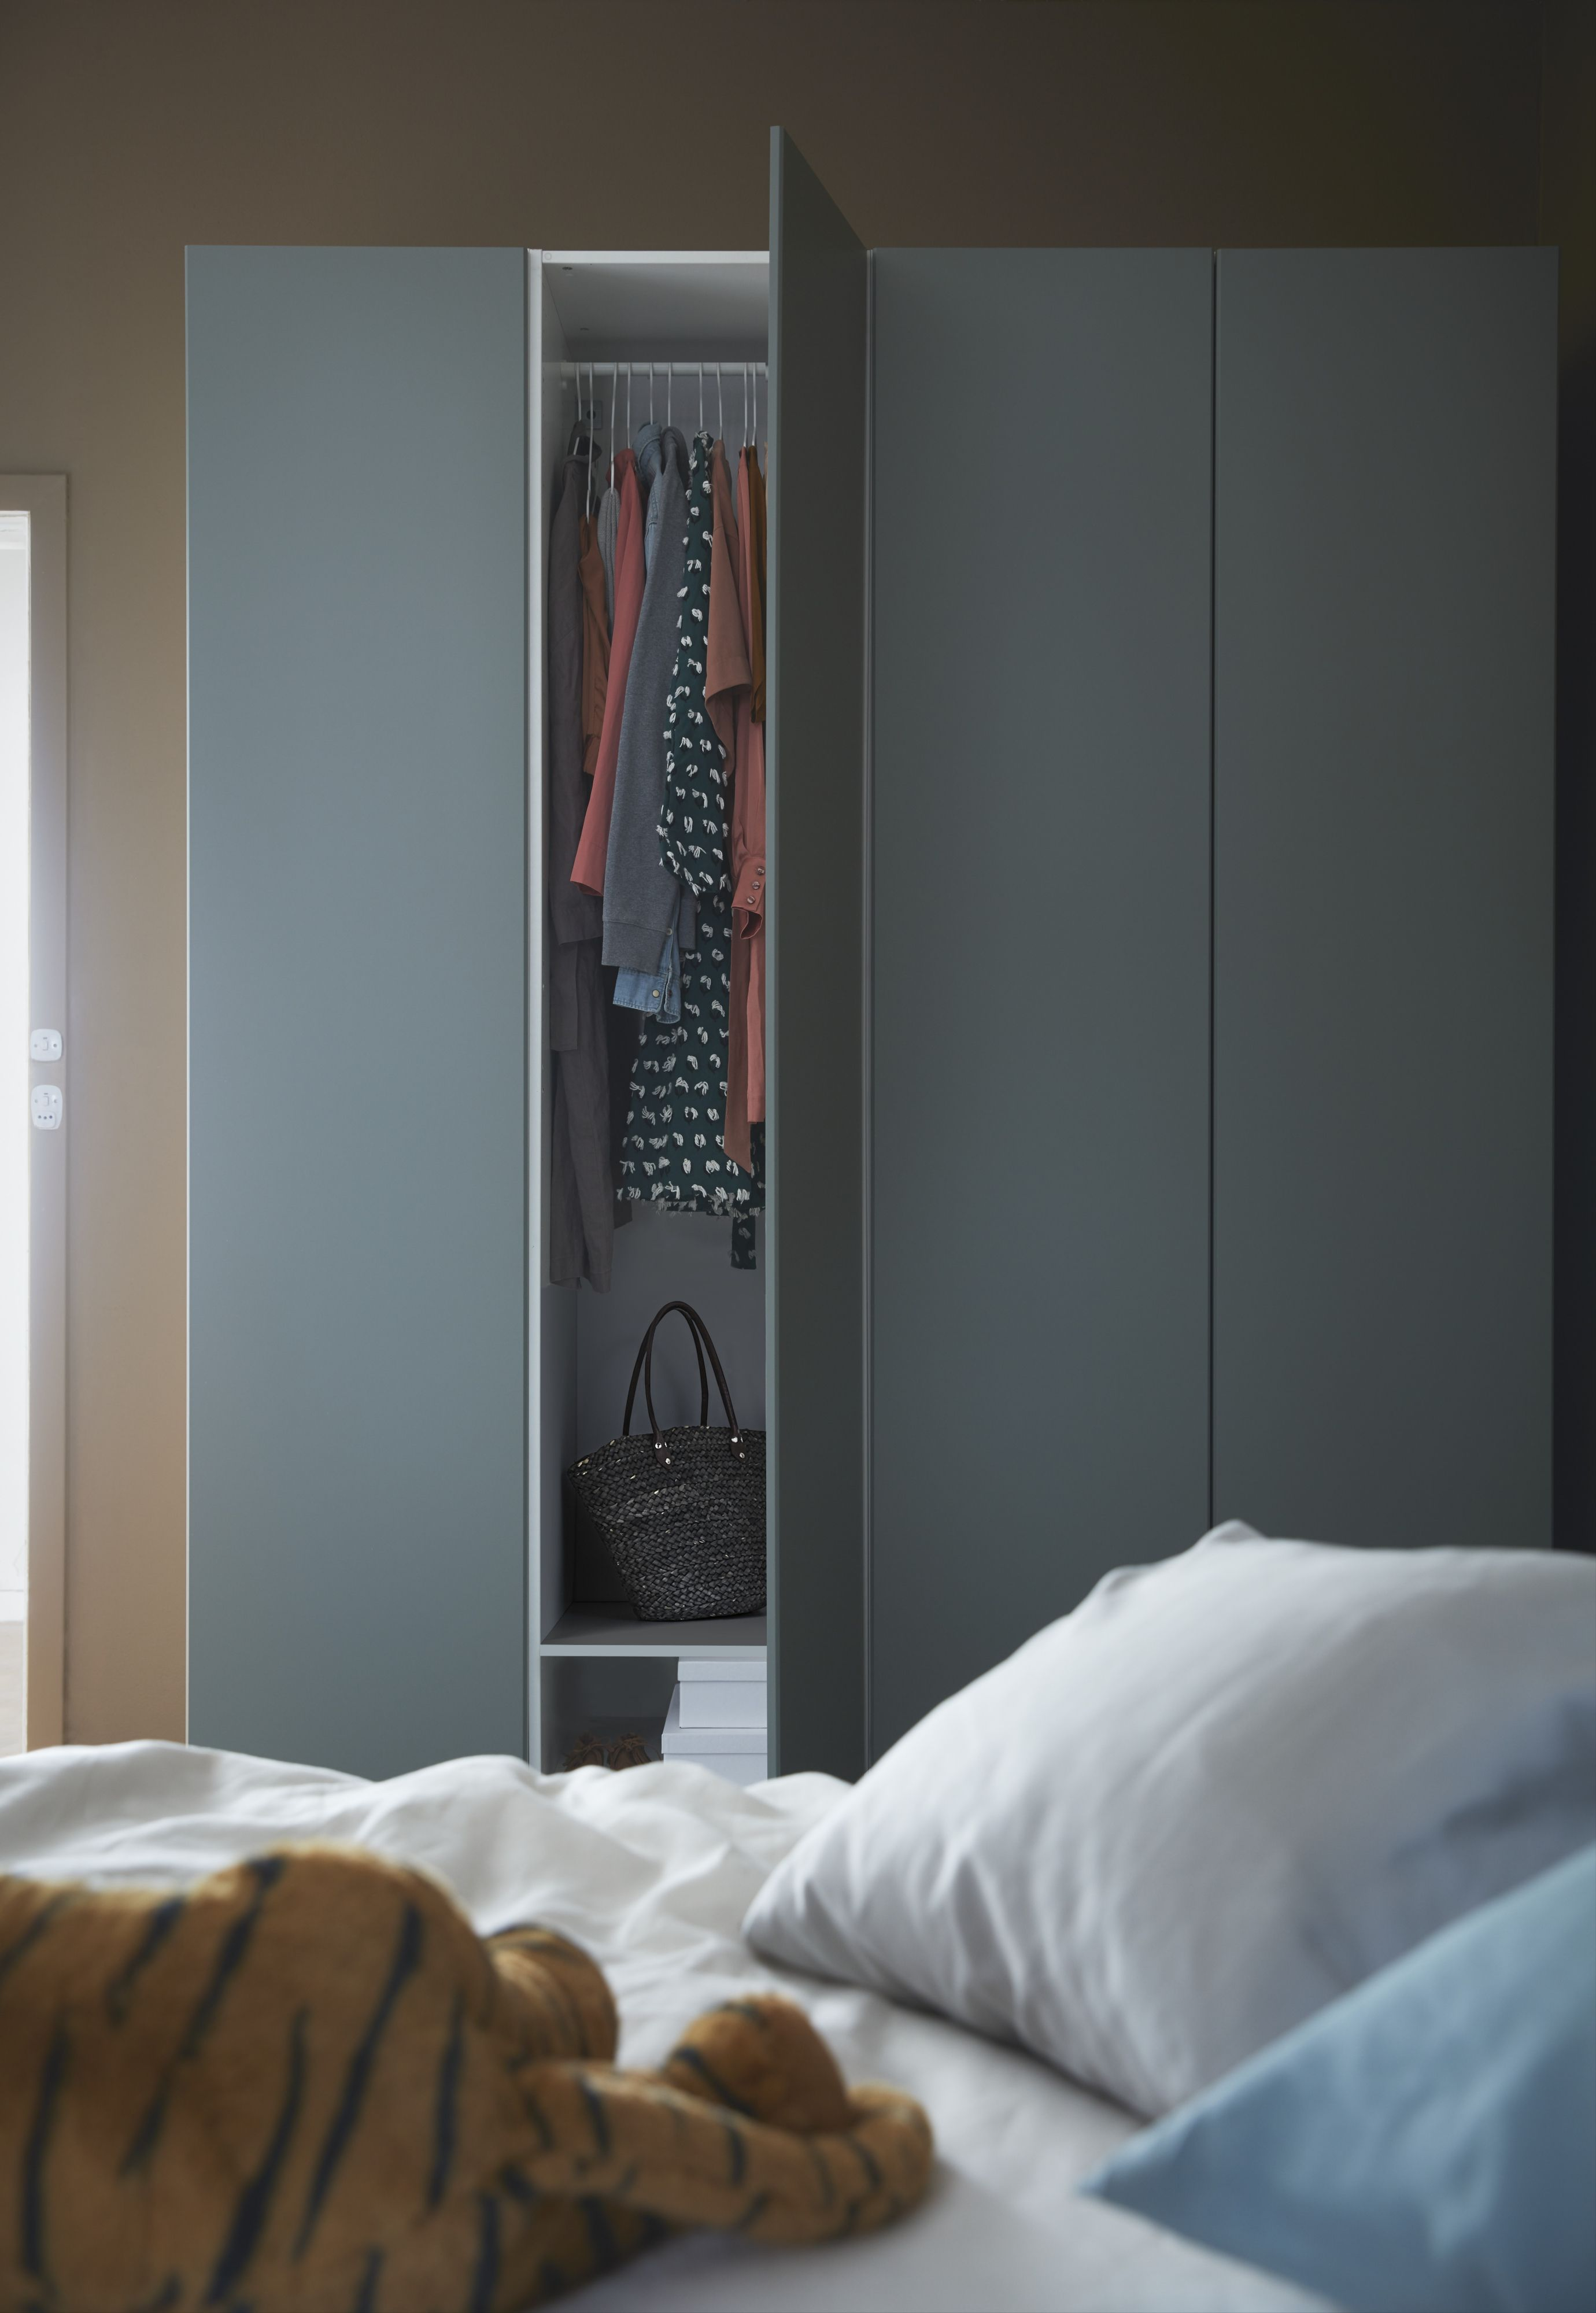 Ikea Wardrobe Leaning To One Side The Pax Reinsvoll Wardrobe Makes Organizing Your Style Easy